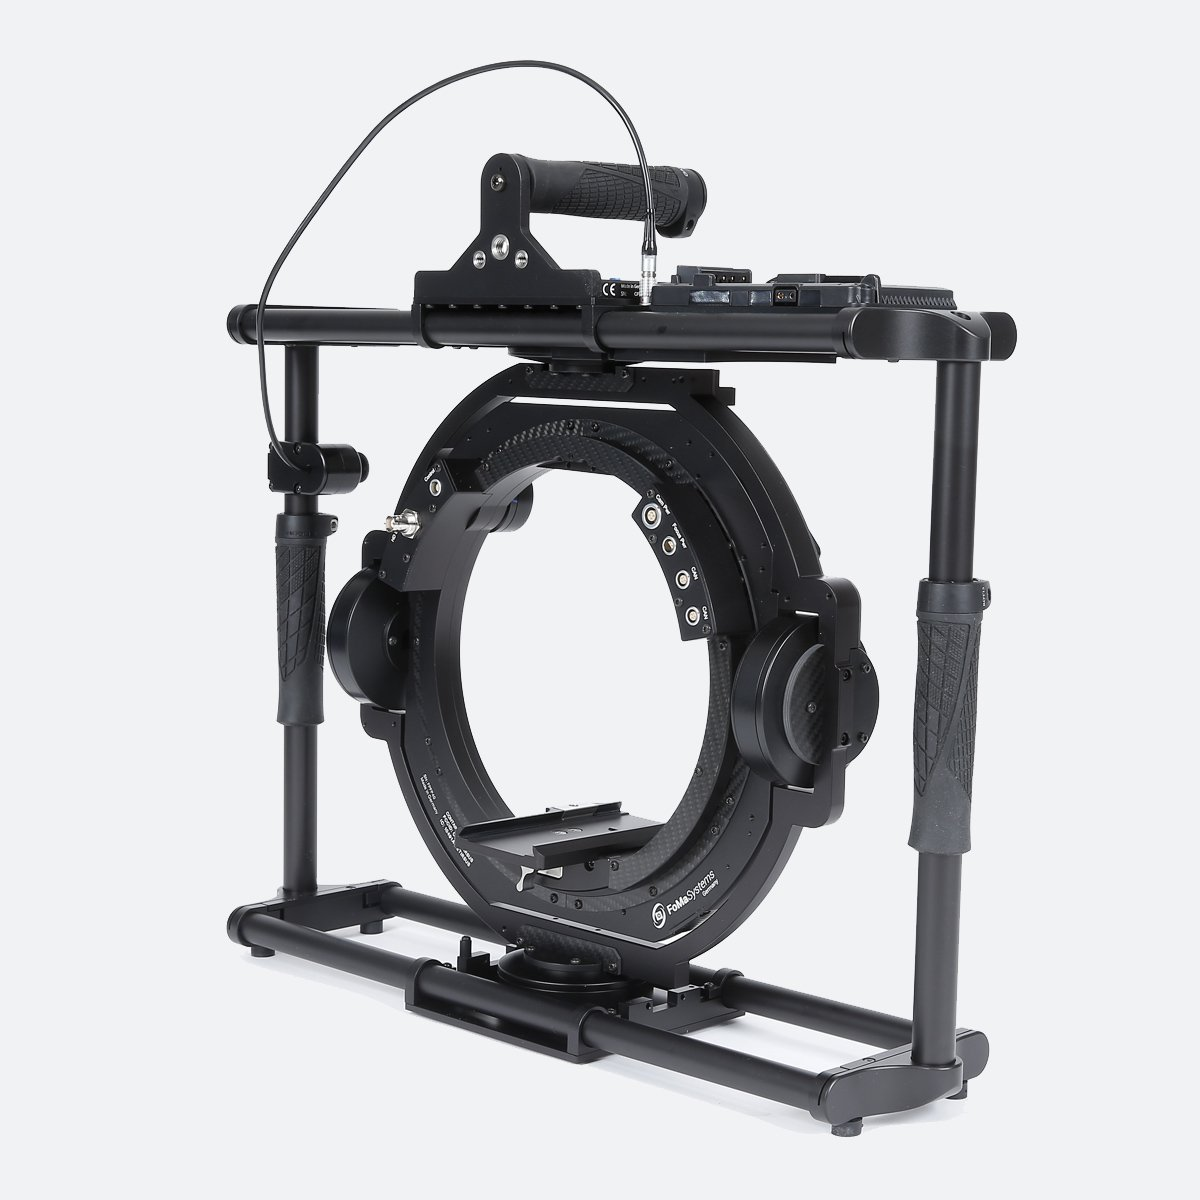 ARRI Maxima MX30 QL 3-Axis Motorized Gimbal